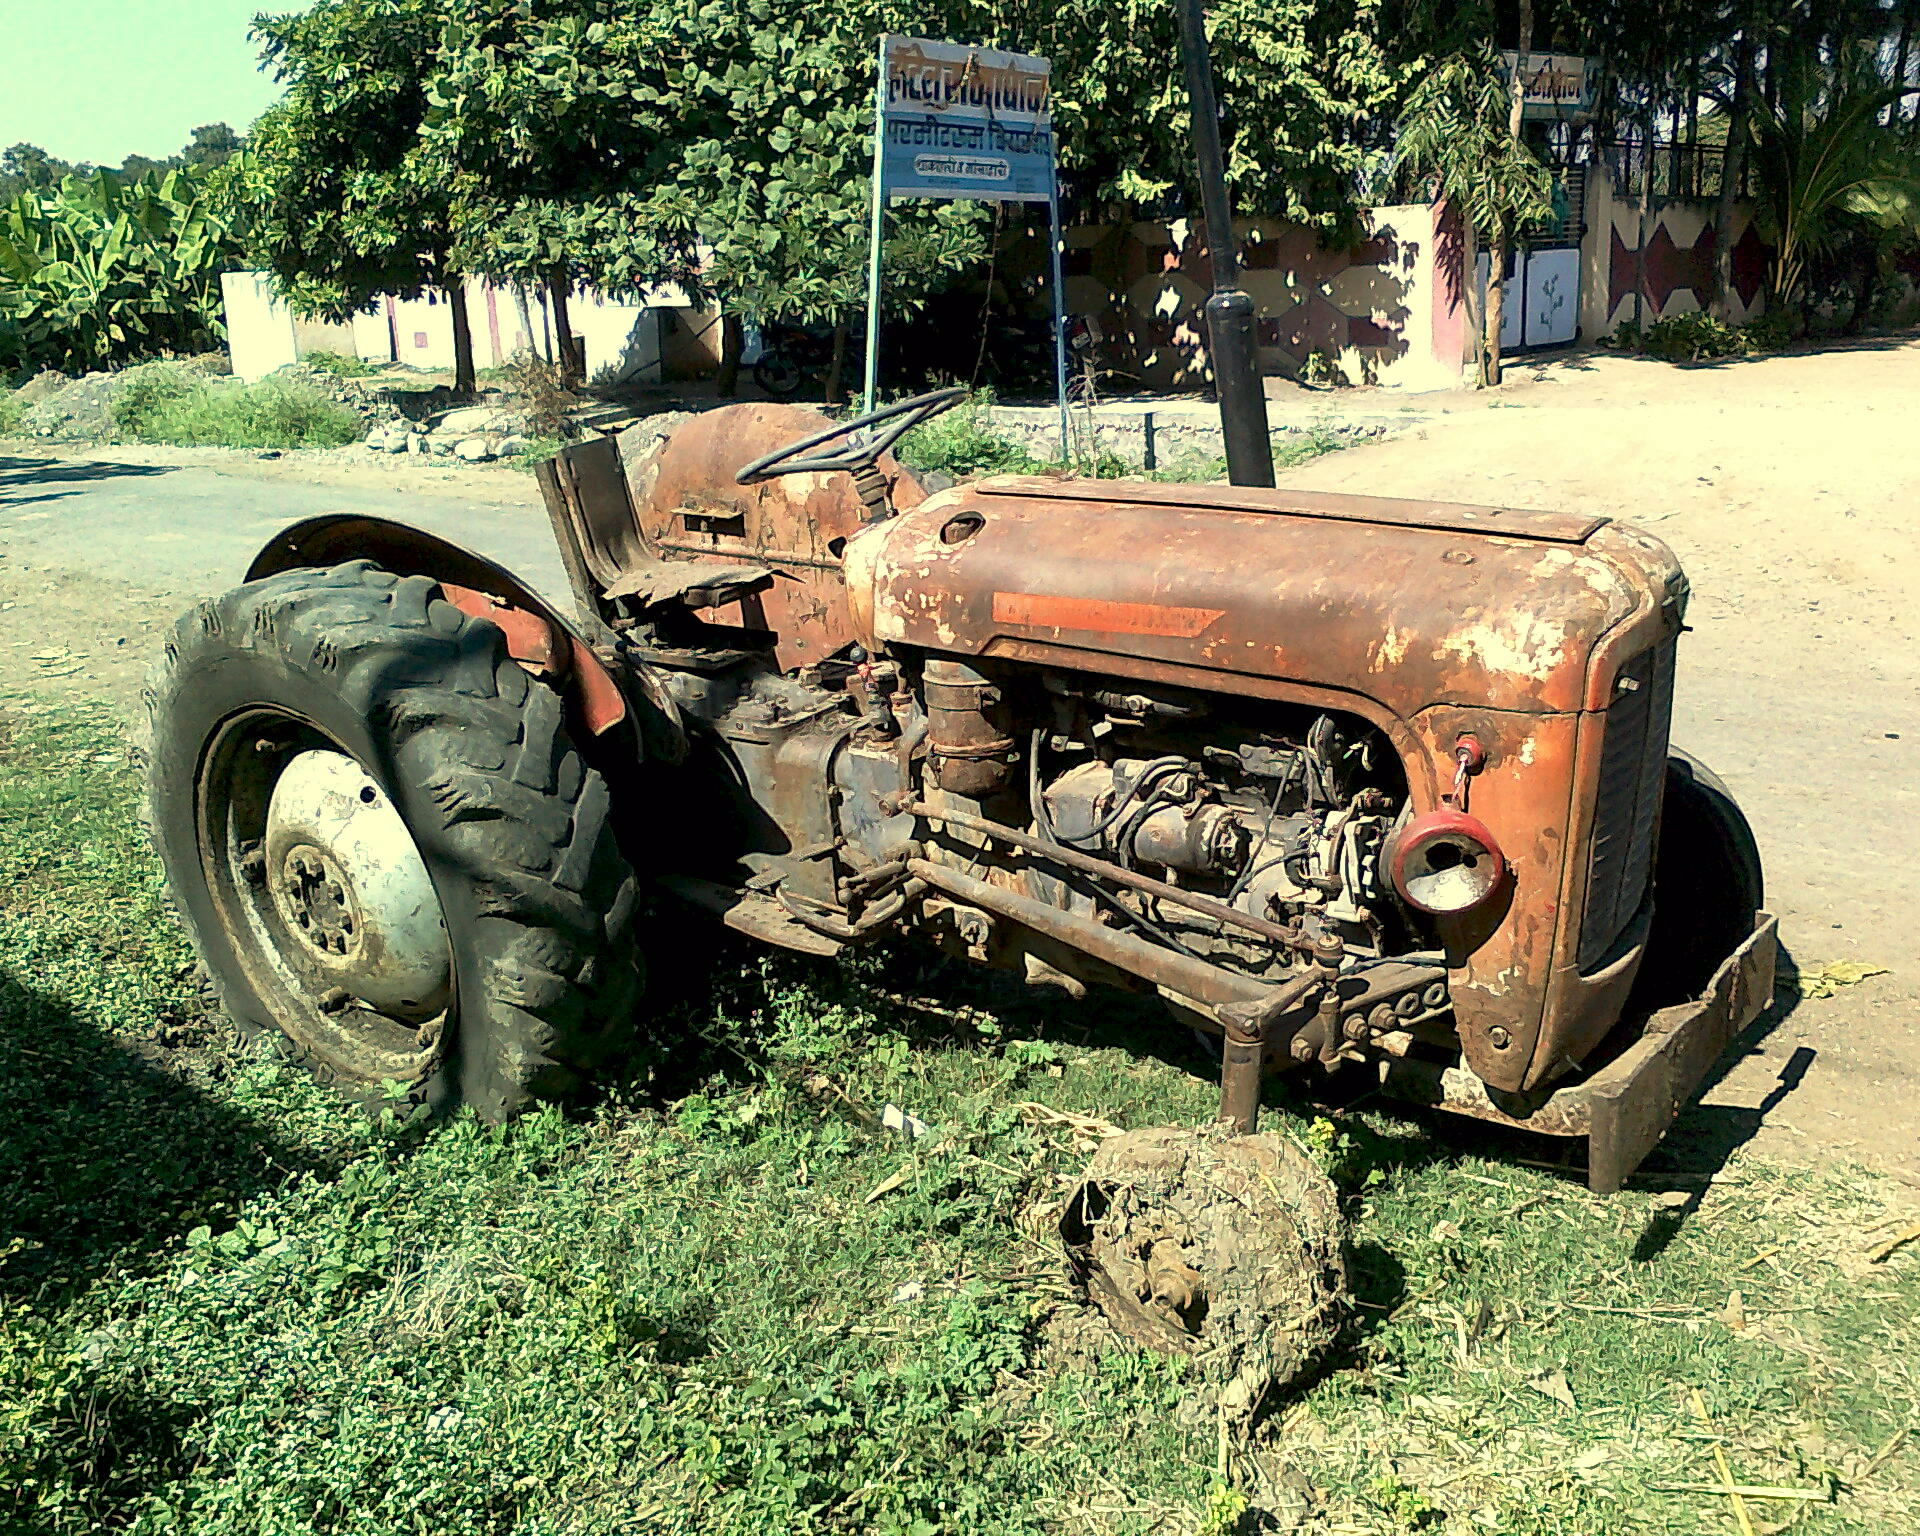 File:Old Abandoned Tractor.jpg - Wikimedia Commons